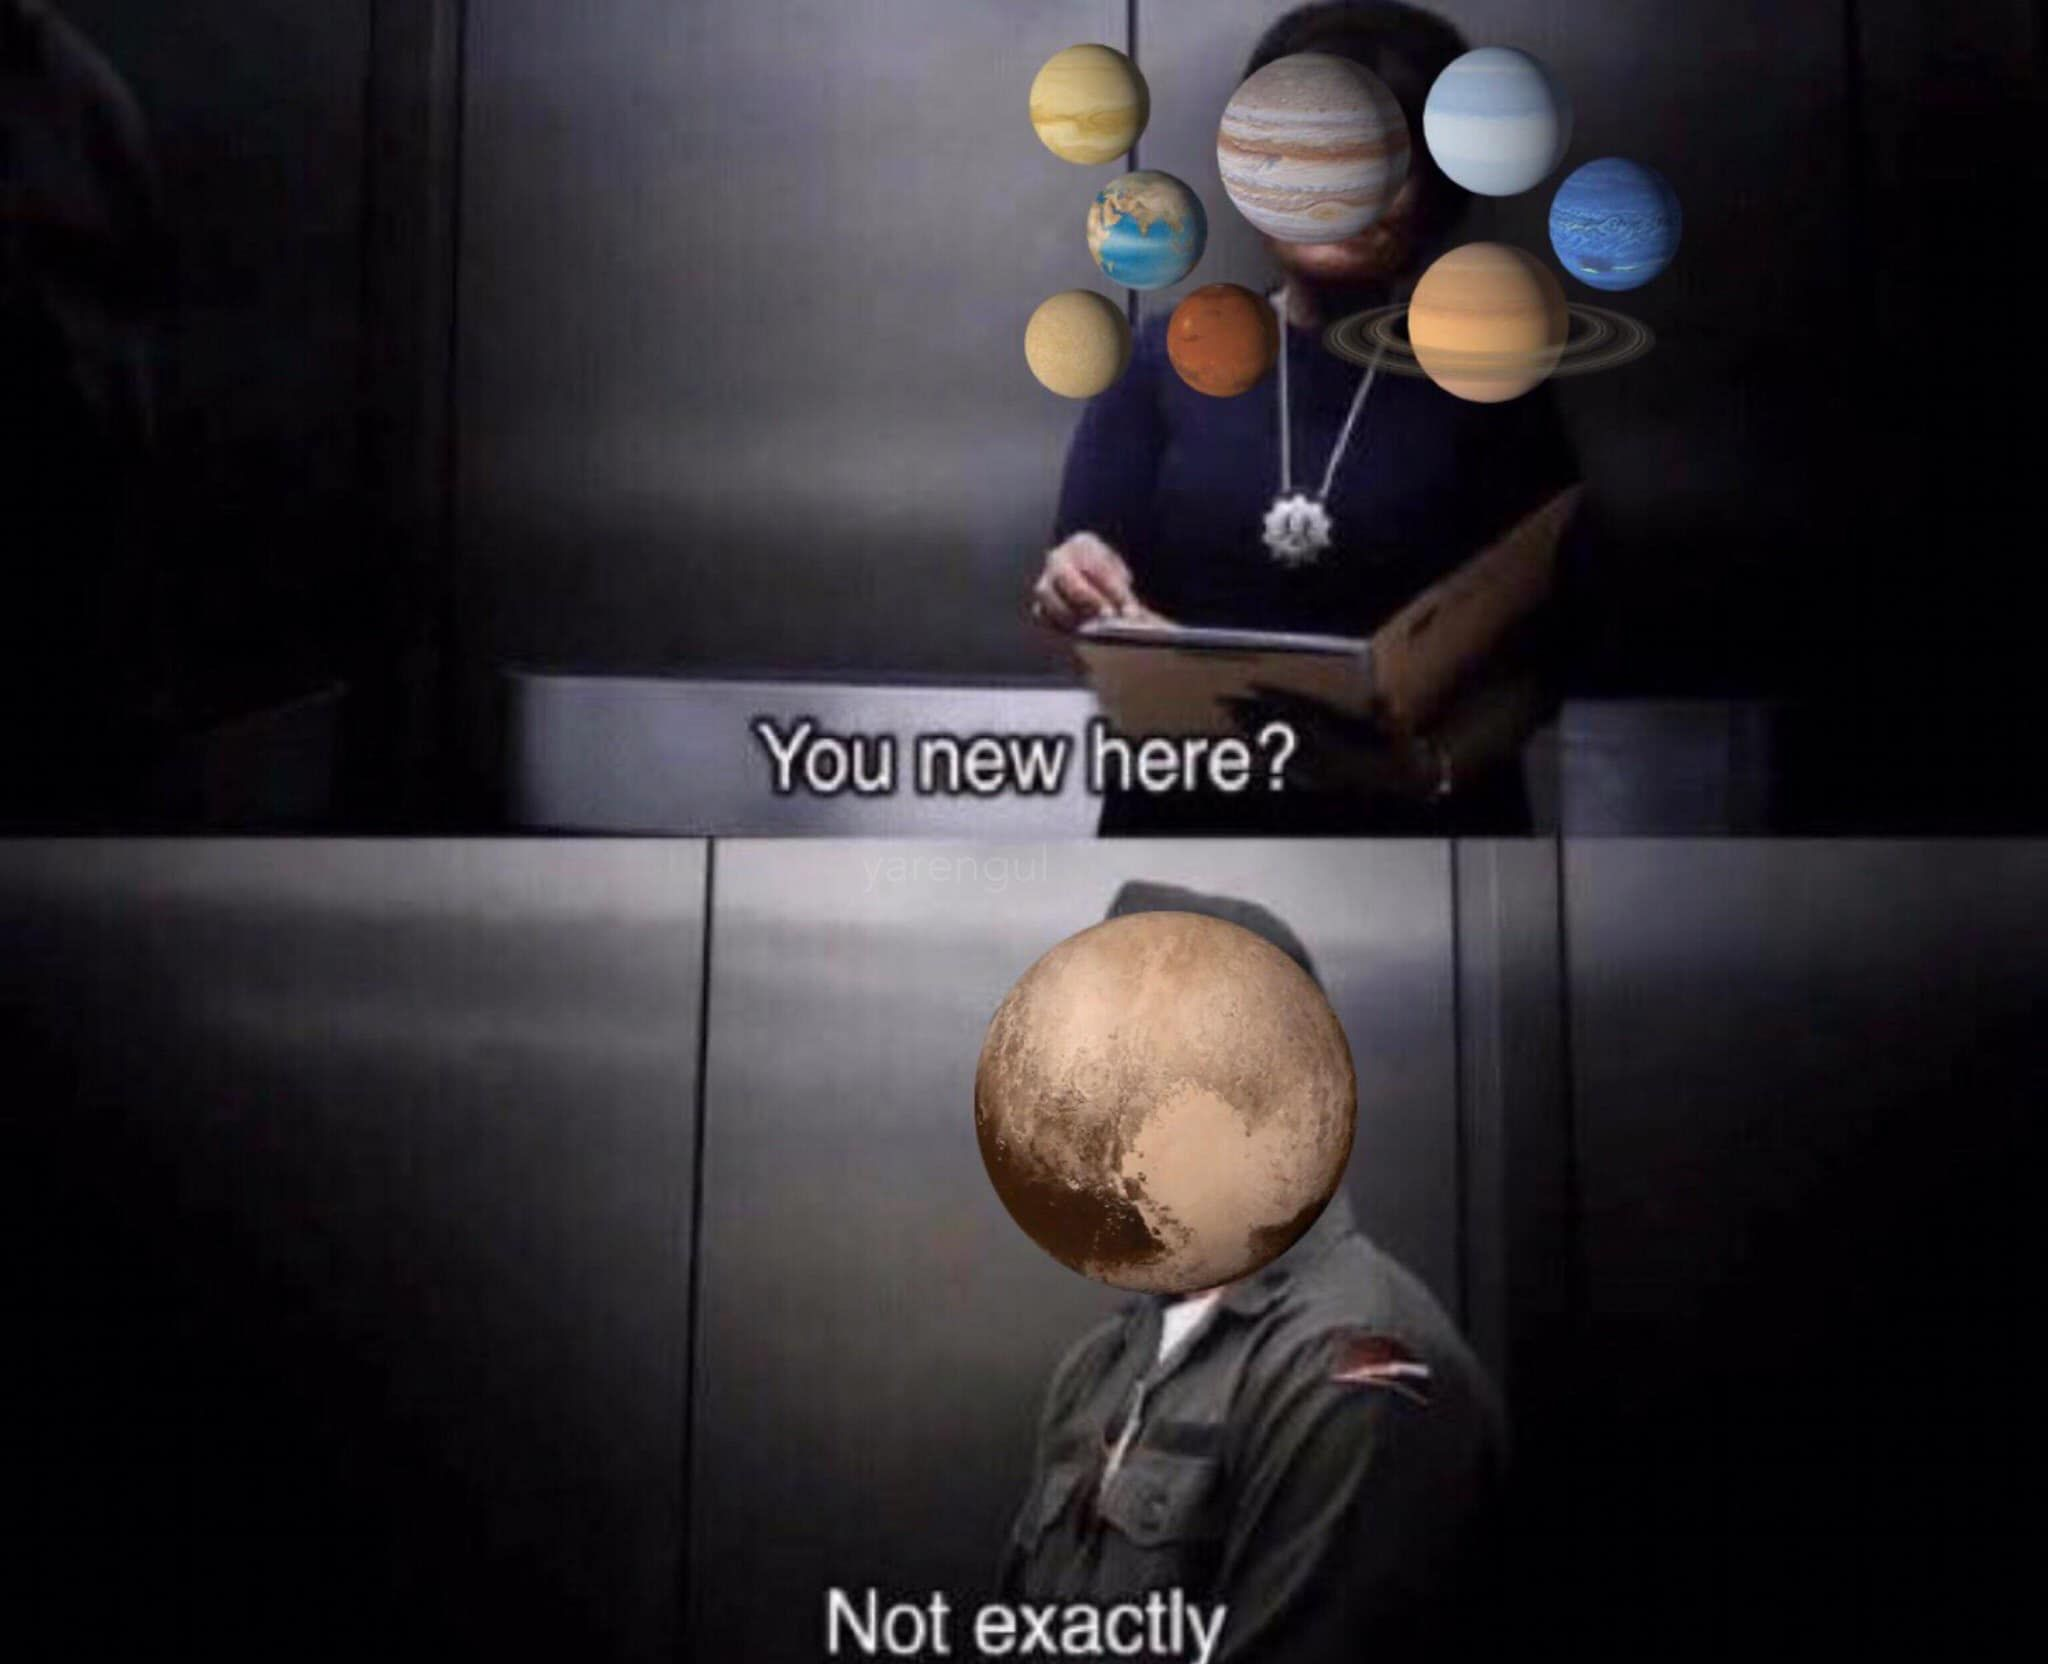 NASA announced Pluto is now considered a planet.